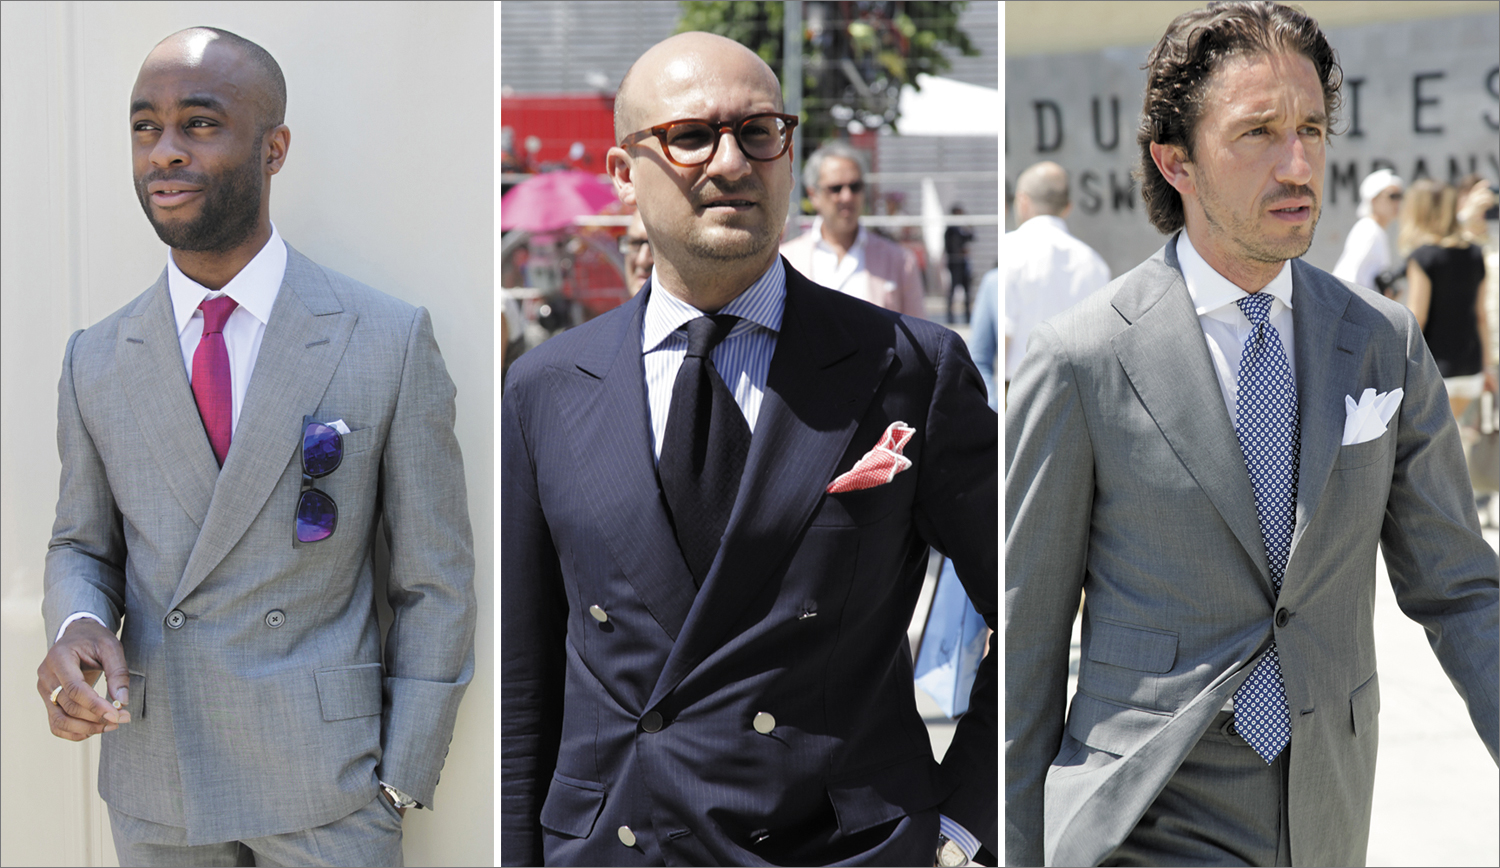 men-in-suits-with-dress-shirt-and-tie